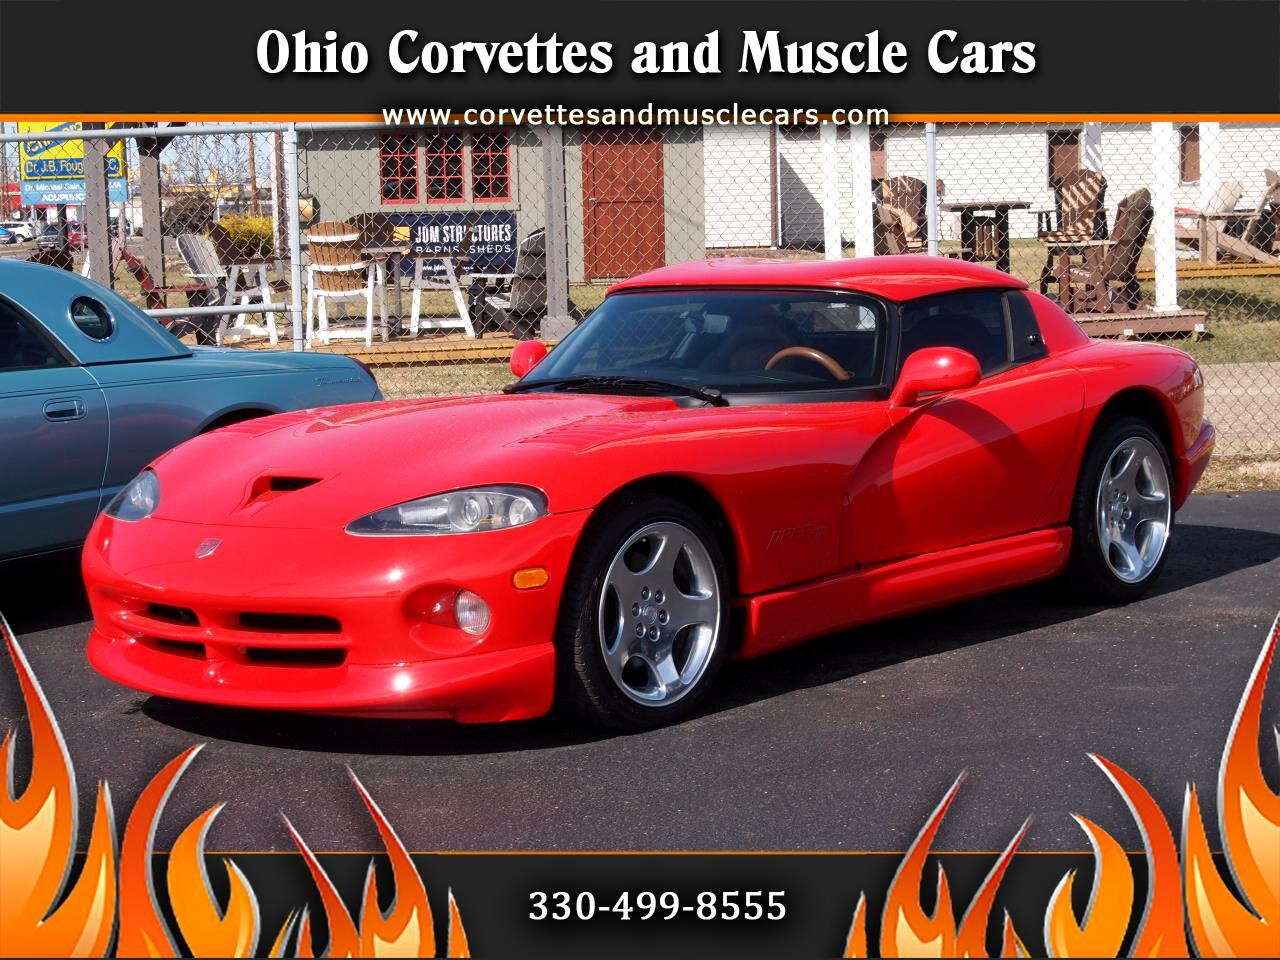 2000 Dodge Viper RT/10 photo